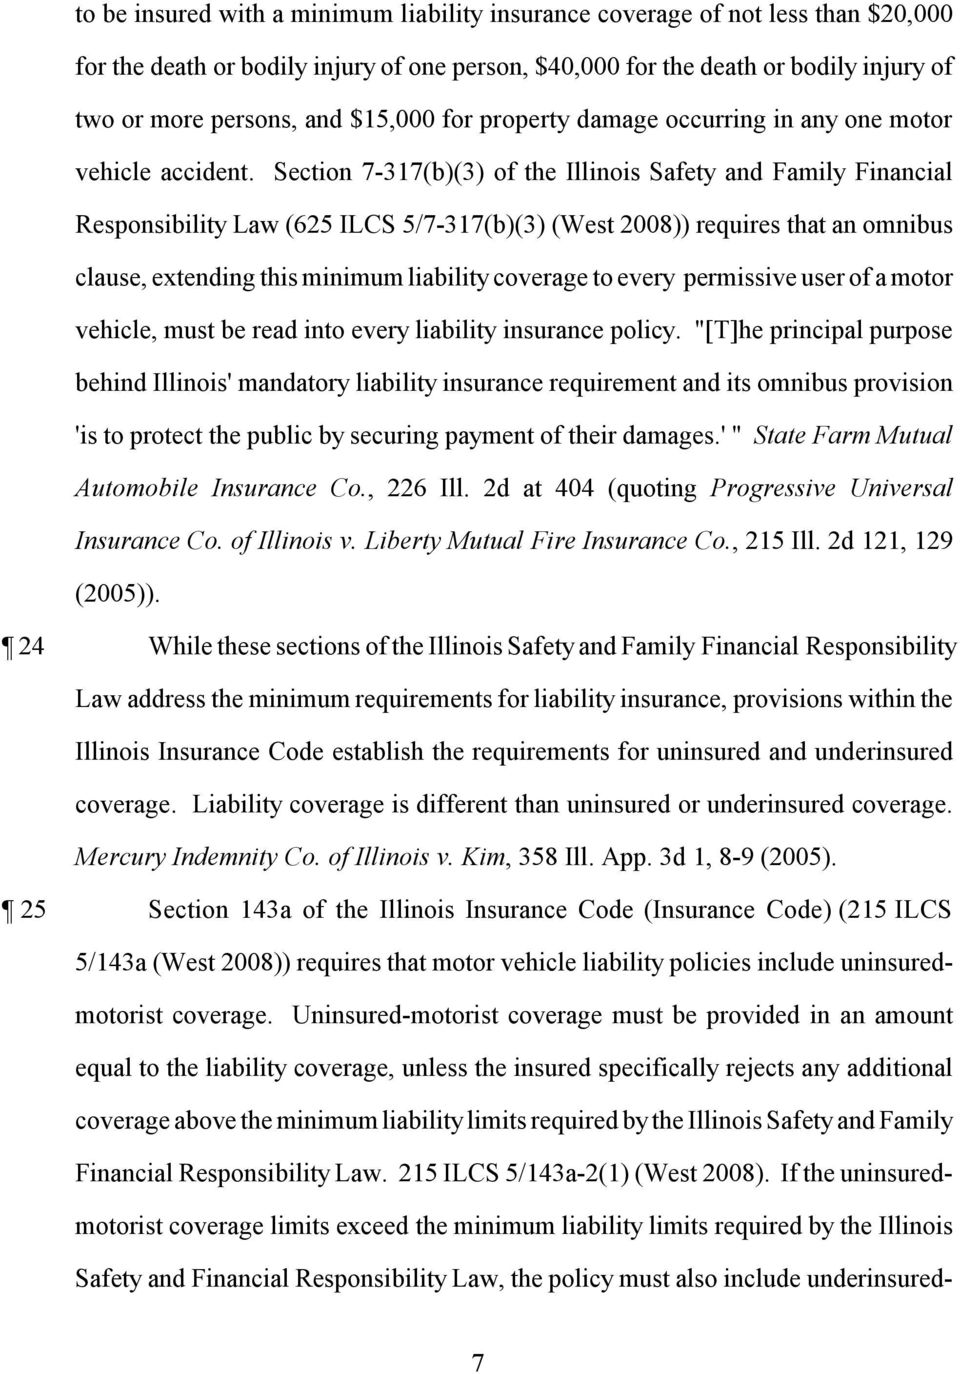 Section 7-317(b)(3) of the Illinois Safety and Family Financial Responsibility Law (625 ILCS 5/7-317(b)(3) (West 2008)) requires that an omnibus clause, extending this minimum liability coverage to